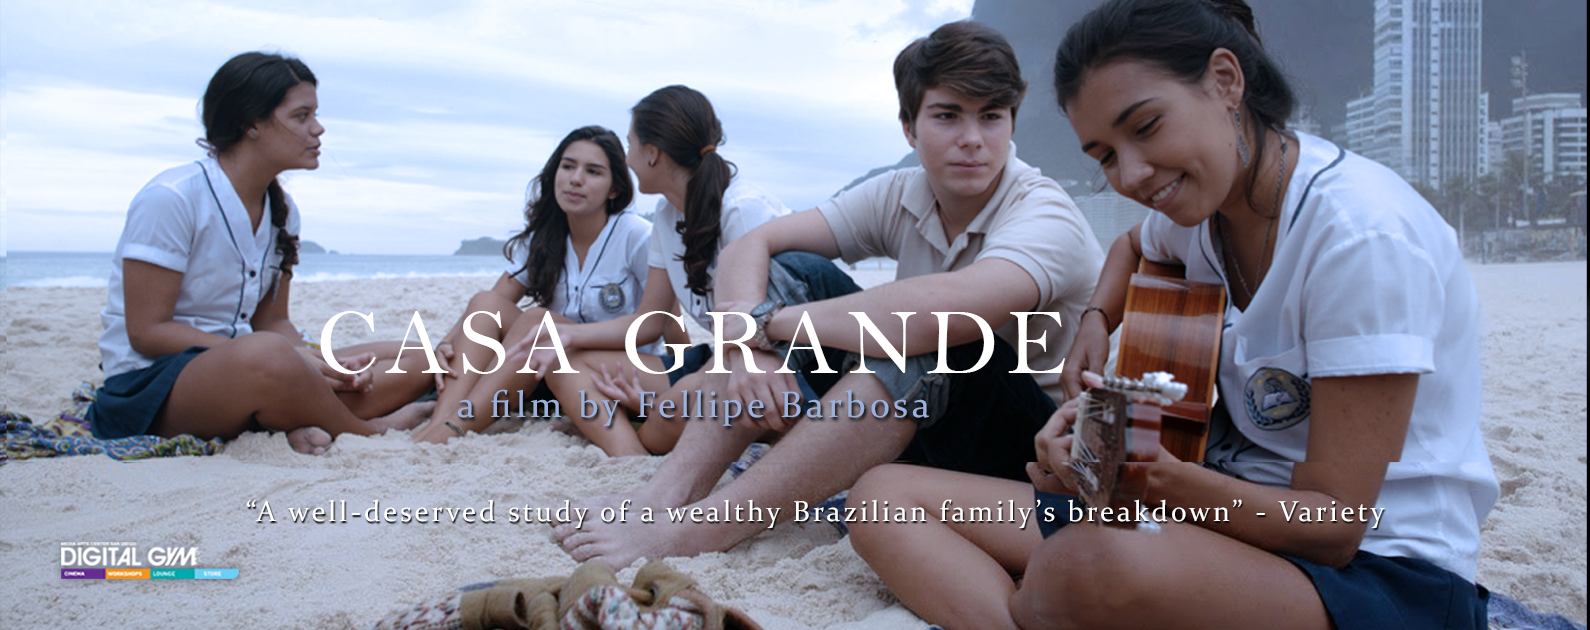 Brazil's Acclaimed Drama, Casa Grande, Returns to San Diego (April 22 – 28)